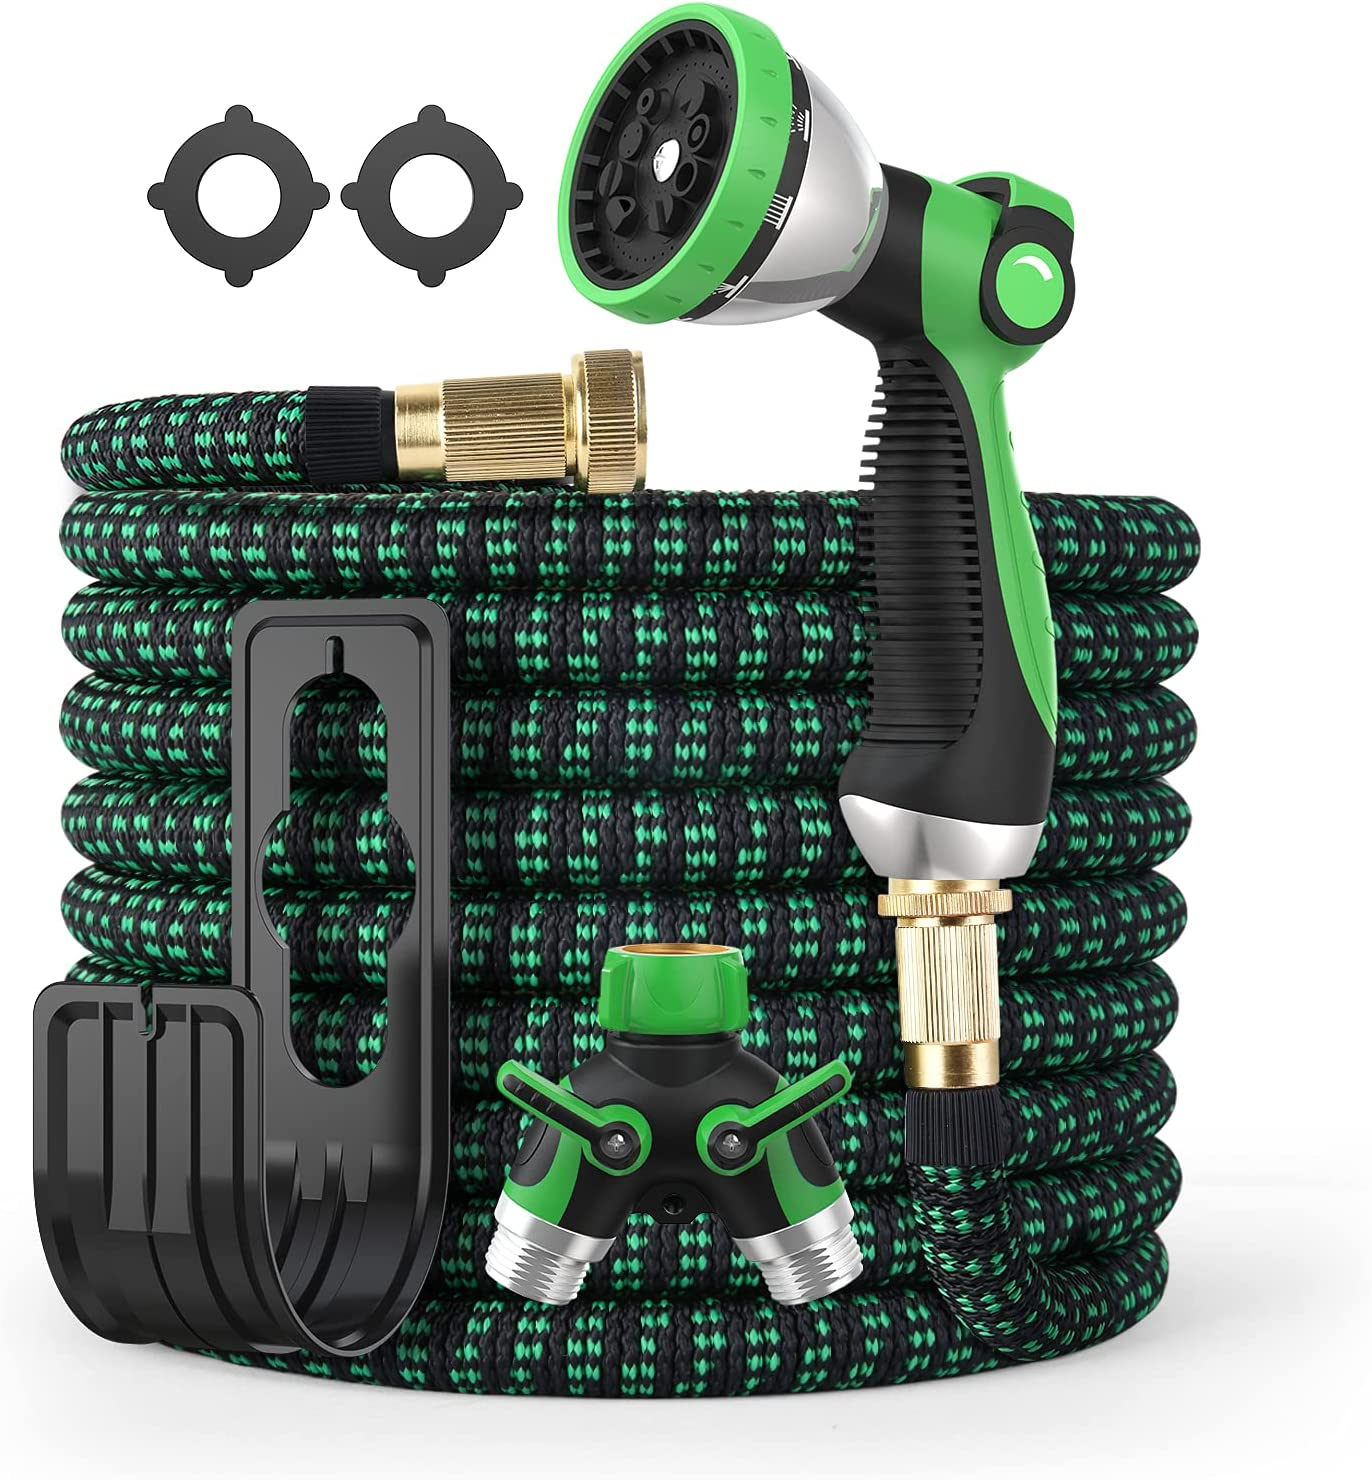 Hose Expandable Garden Hose 10 Function Zinc Sprayer Water Hose with Slide Switch, 75FT Garden Hose Heavy Duty with 2-Way Splitter, Flexible Hose with Leakproof 3/4